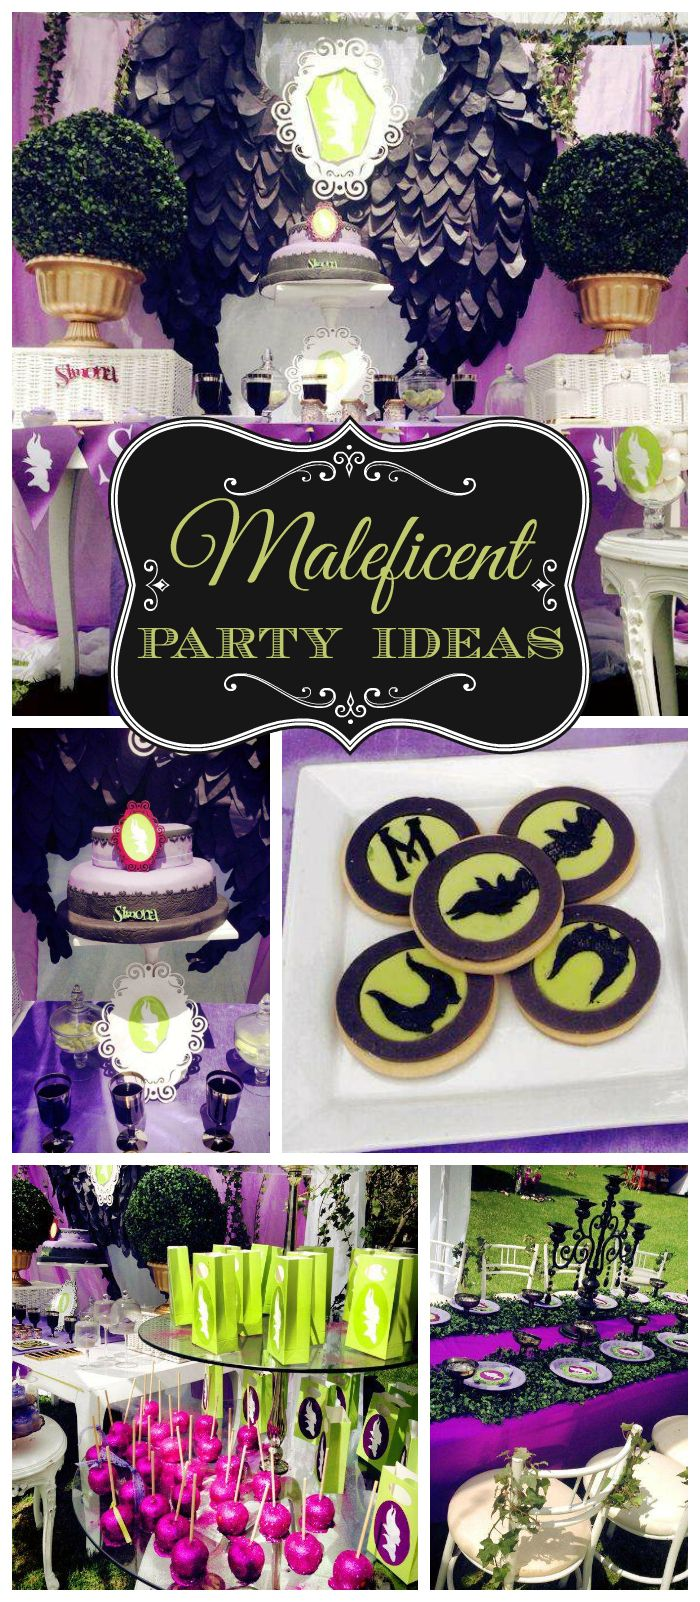 A Maleficent birthday party in green, purple and black with stunning cake and cookies!  See more party planning ideas at CatchMyParty.com!